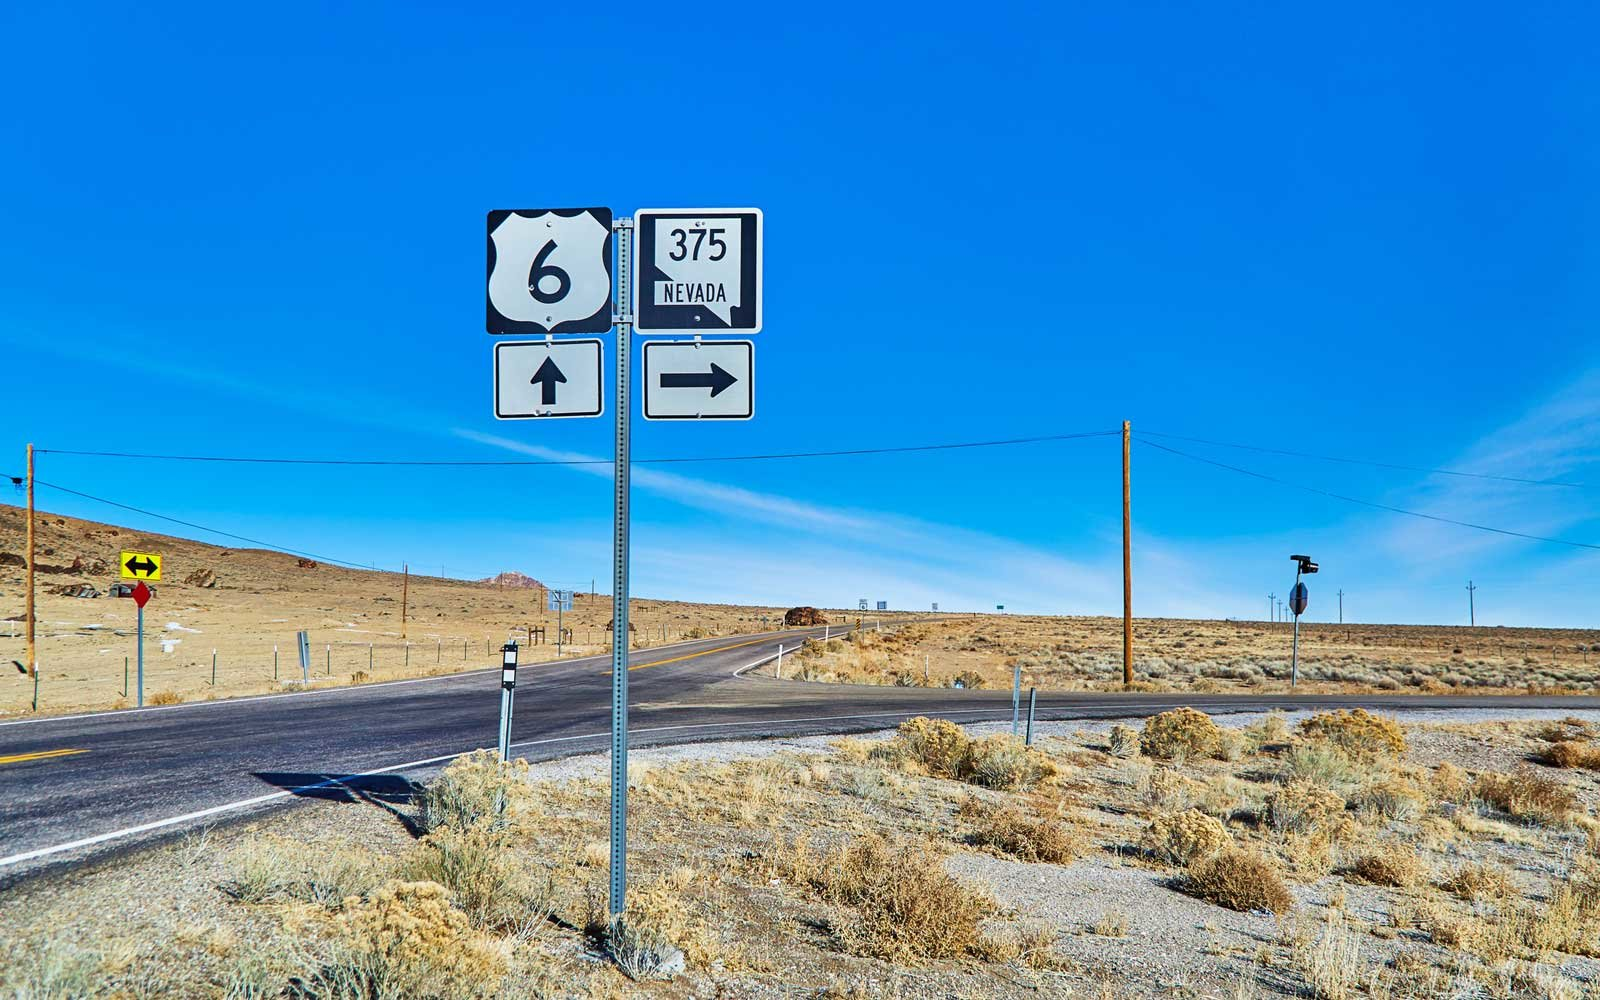 The sign post to signify the start of Highway 375, known as the ET Highway in Nevada,USA